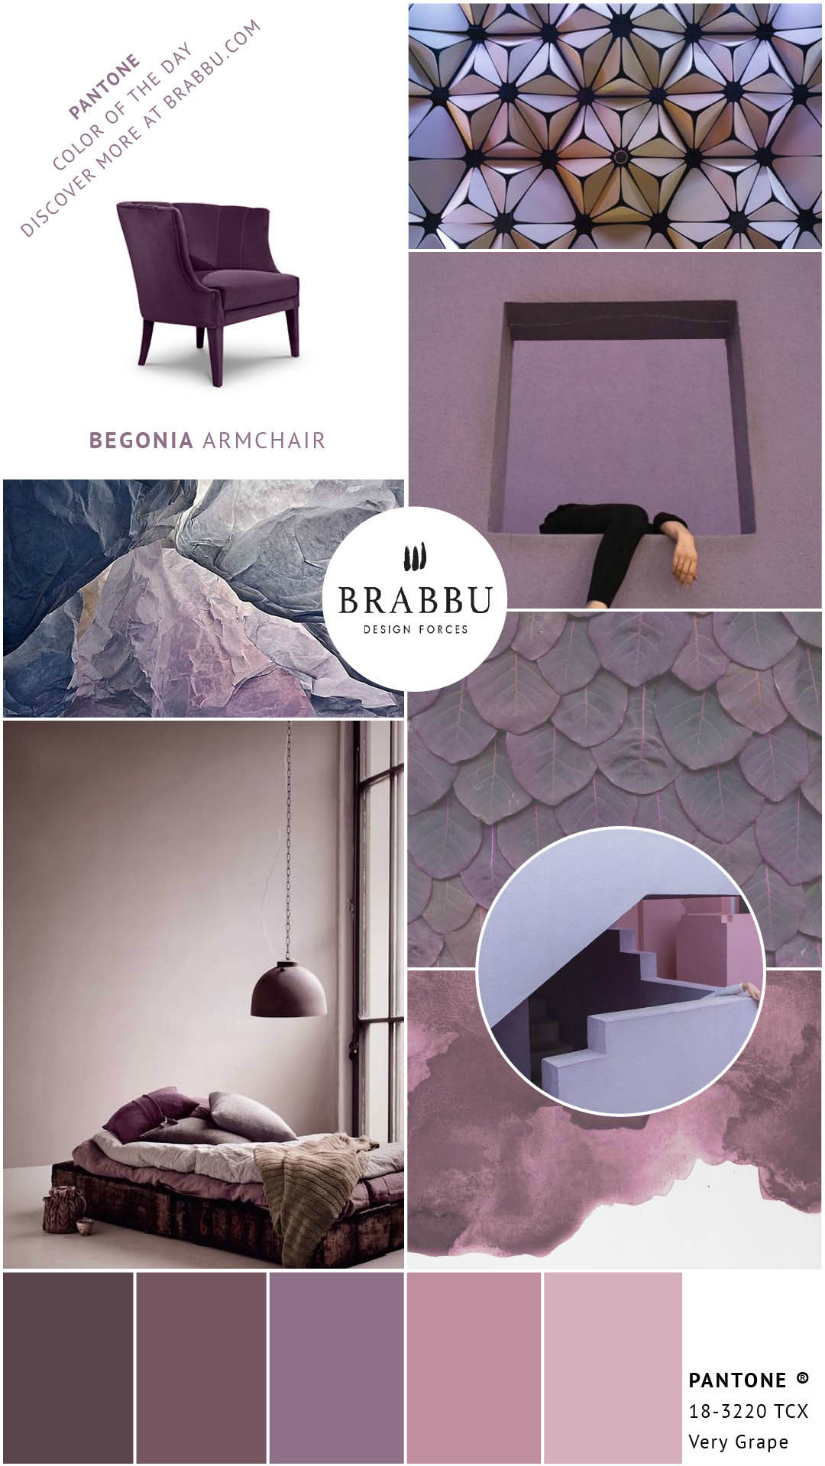 A Week In Colors: Five Color Trends To Add To Your Home Decor XI |home decor, color trends, modern interior design #colortrends #interiordesign #homedecor  home decor A Week In Colors: Five Color Trends To Add To Your Home Decor XI Very Grape